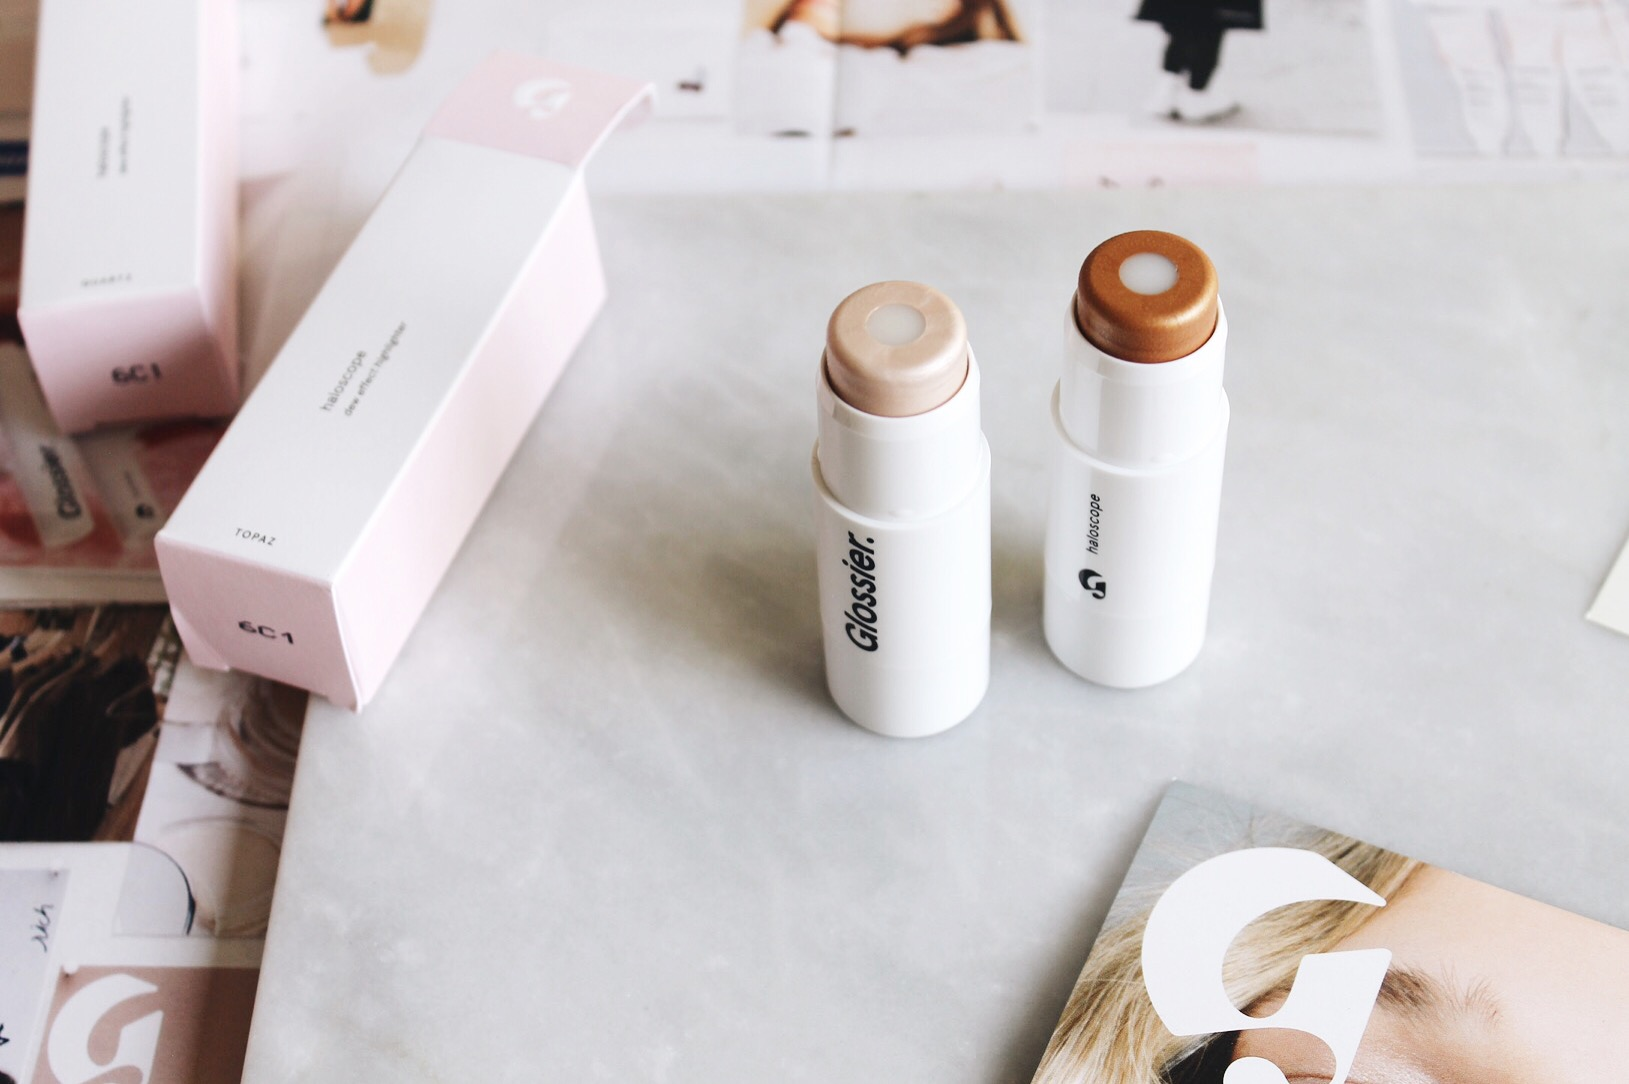 Glossier Haloscope Dew Effect Highlighter in Quartz and Golden Topaz Review, Glossier Haloscope, Dew Effect Highlighter, Strobing, Glossier Highlighter Review, Glossier Swatches, Haloscope, Haloscope swatches, Haloscope Review